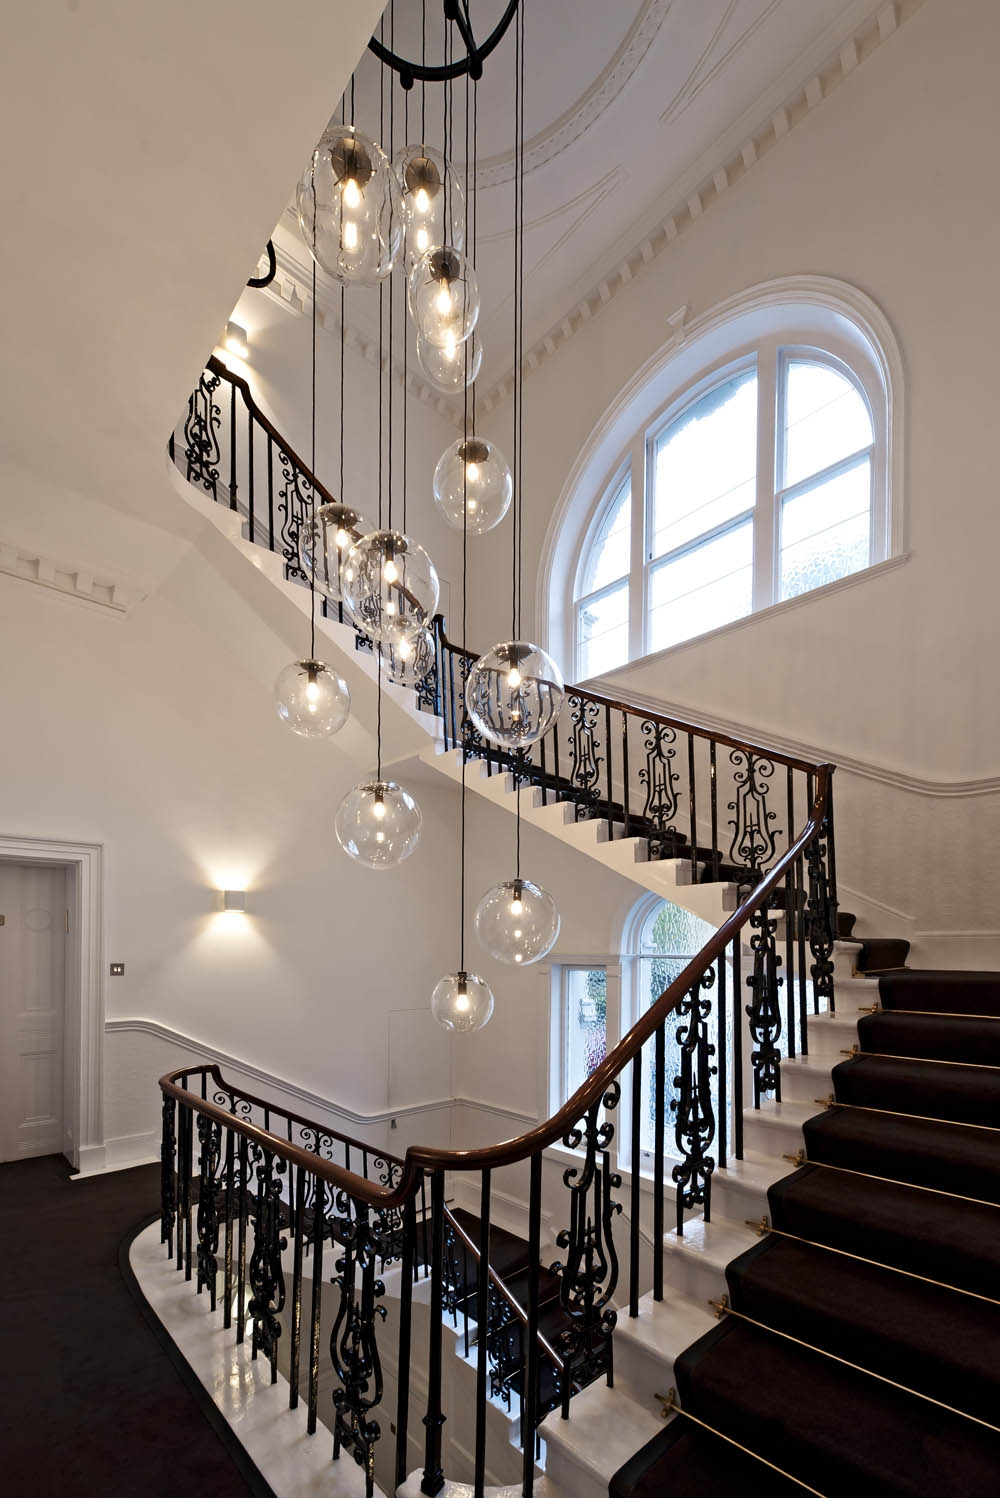 Obviously Over The Top But I Like The Idea For The Home Regarding Stairway Chandeliers (Image 13 of 15)